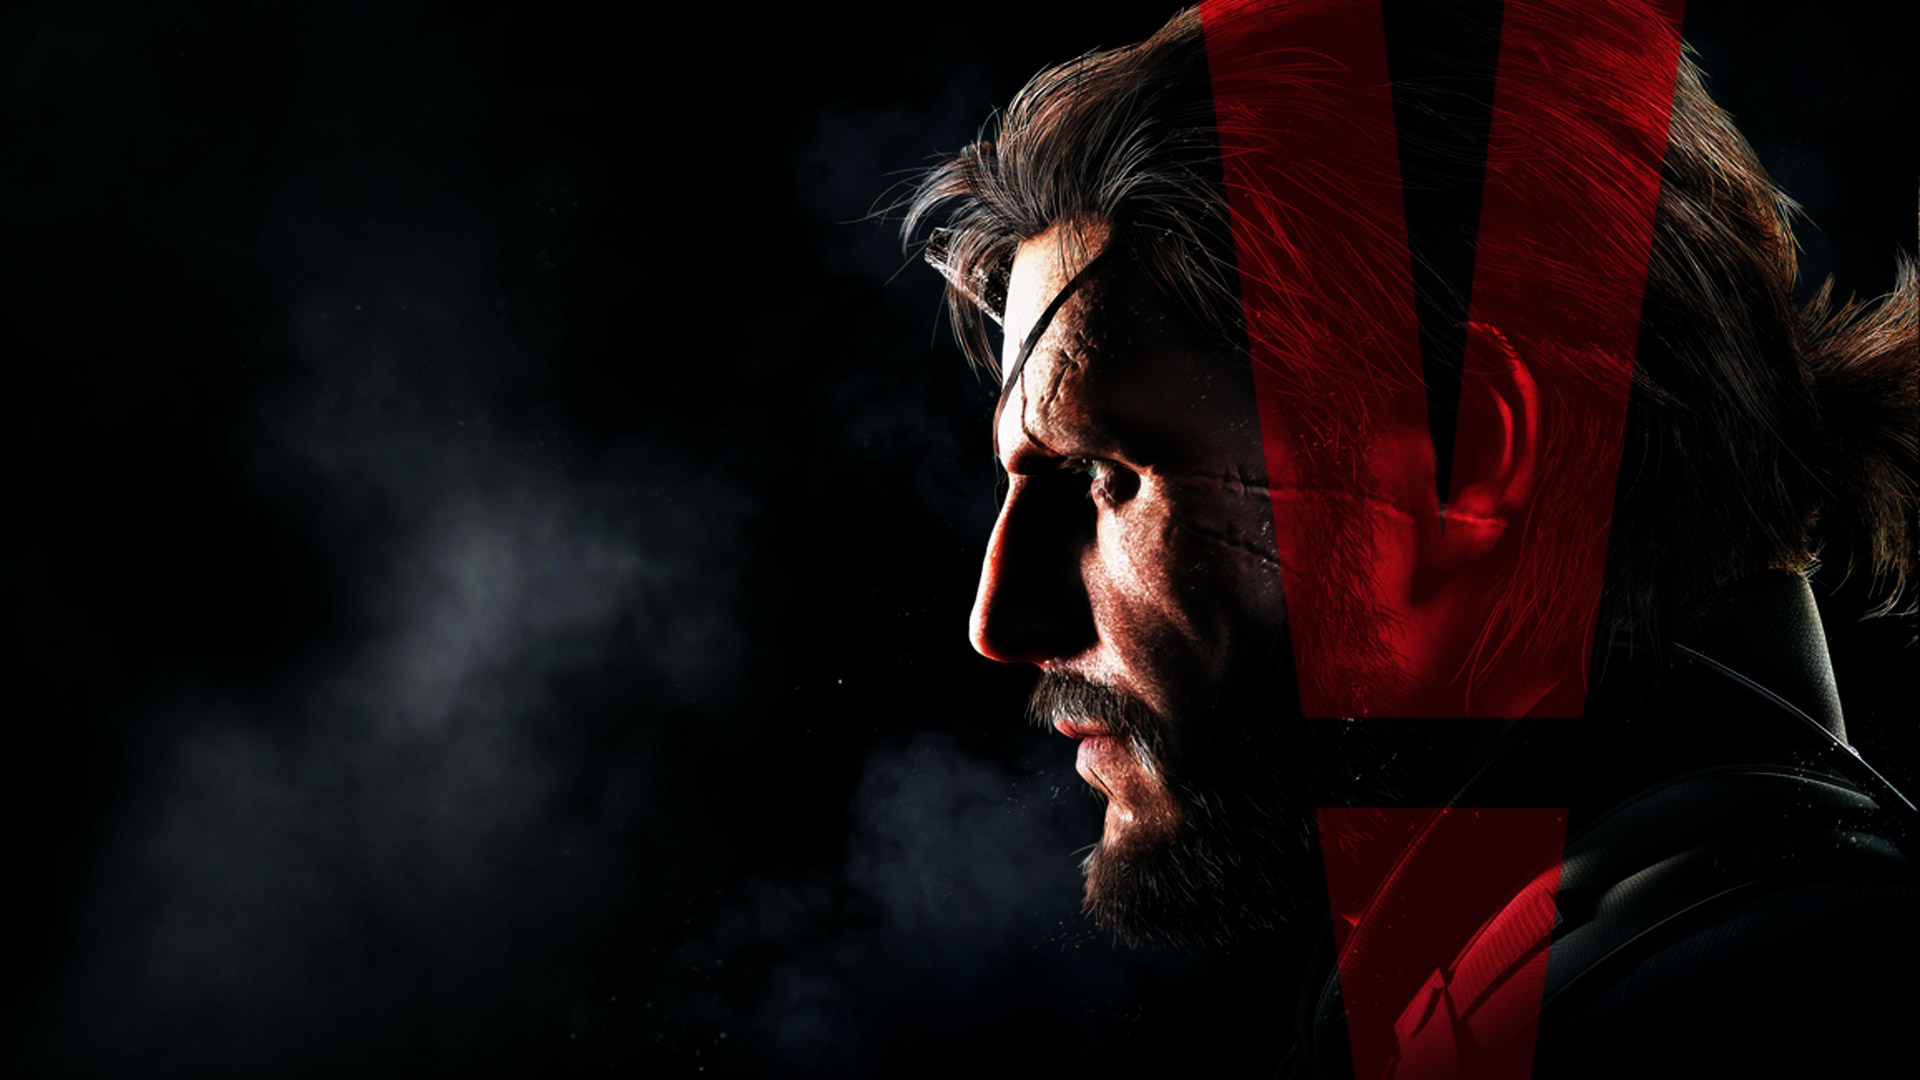 Metal Gear Solid V Wallpaper